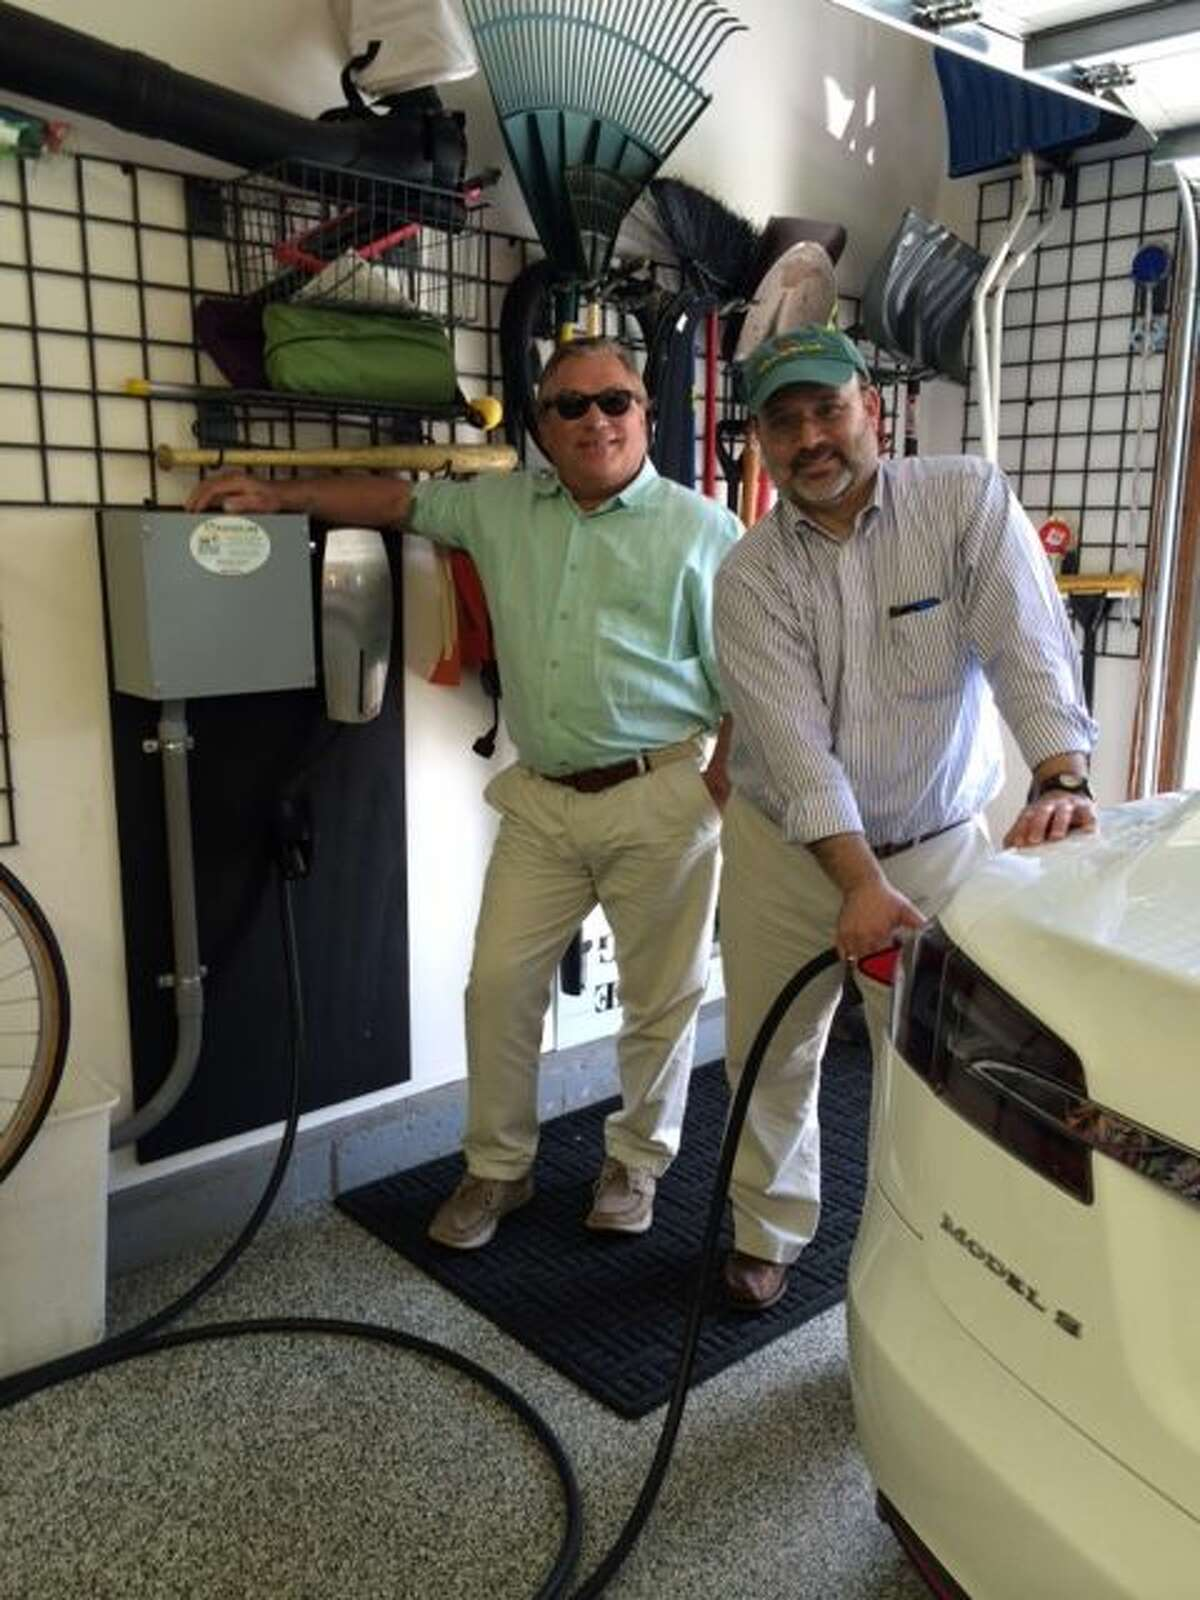 Photo:Ed Ingalls, owner of CT Electric Car, a division of Newington Electric, visits with Tesla electric vehicle owner Seth Diamond after the installation of a car charging station at his Glastonbury, CT home. CT Electric Carhas been selected as one of Tesla's recommended car charging station installers.